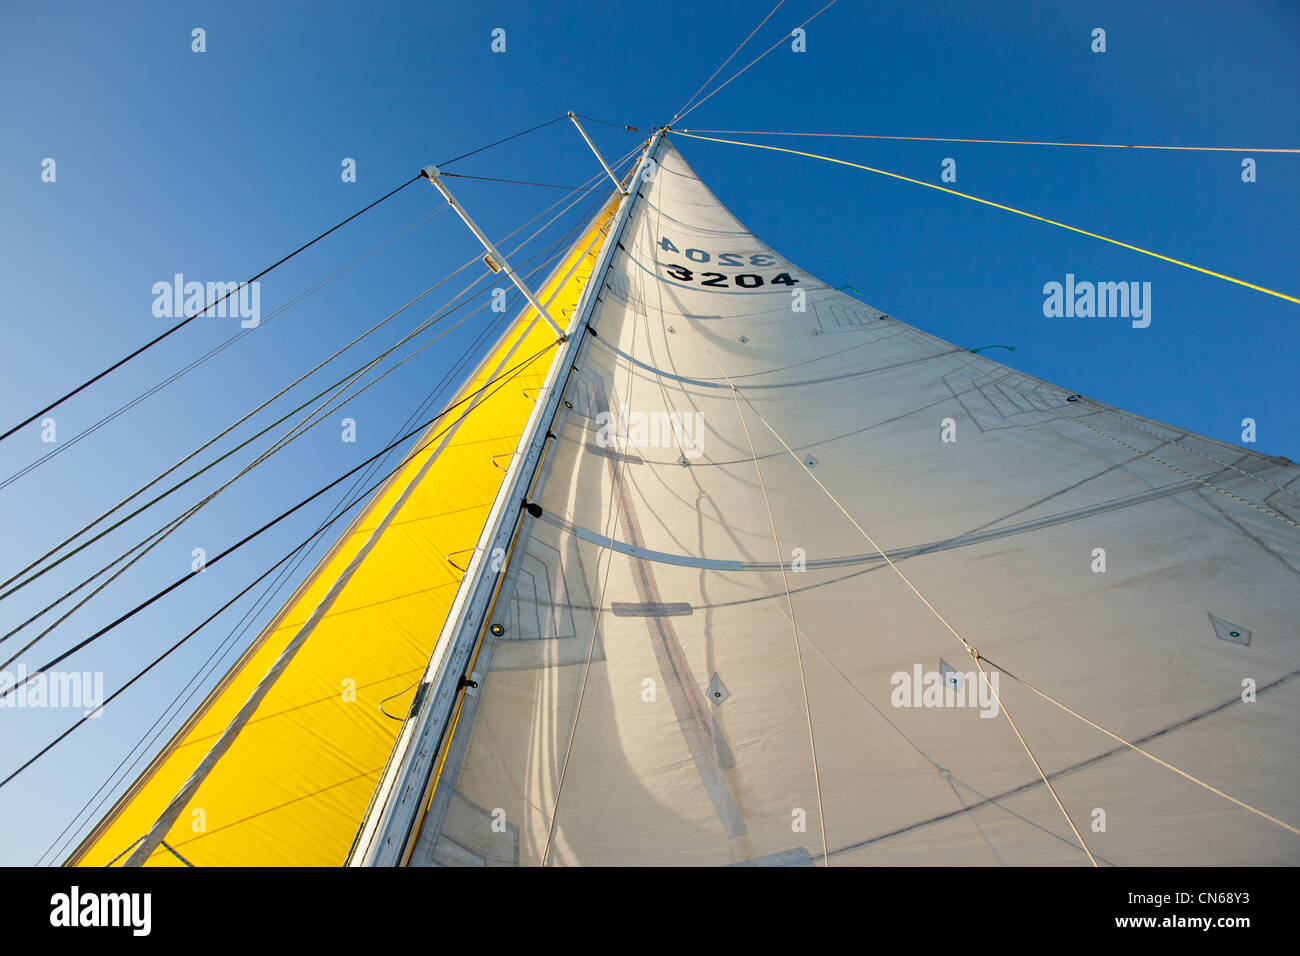 Looking up a mast on a boat. - Stock Image